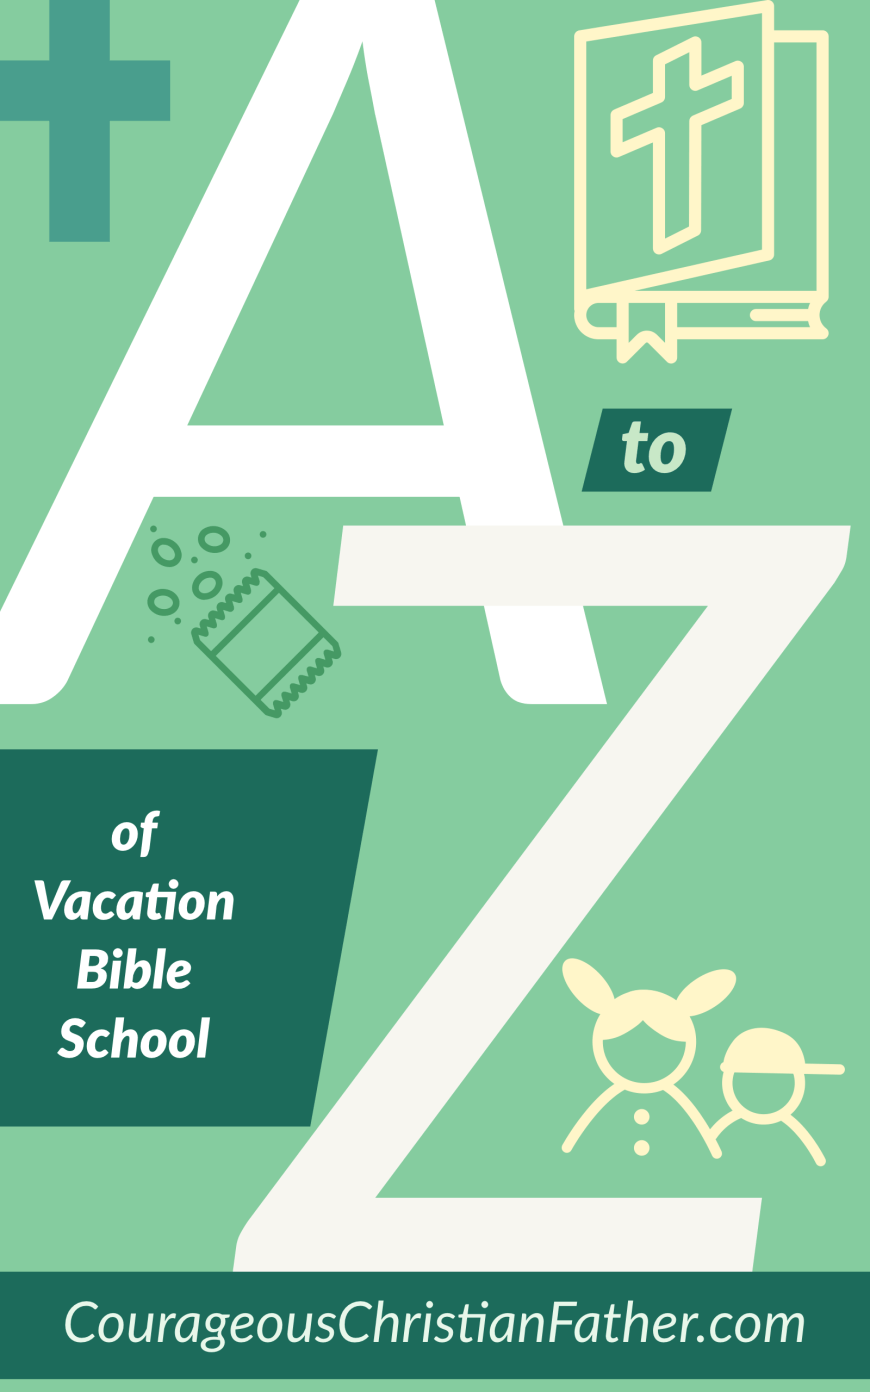 The A-Z of Vacation Bible School (VBS) - This is the list of all things Vacation Bible School using each letter of the alphabet starting with A and going to Z. #VBS #VacationBibleSchool